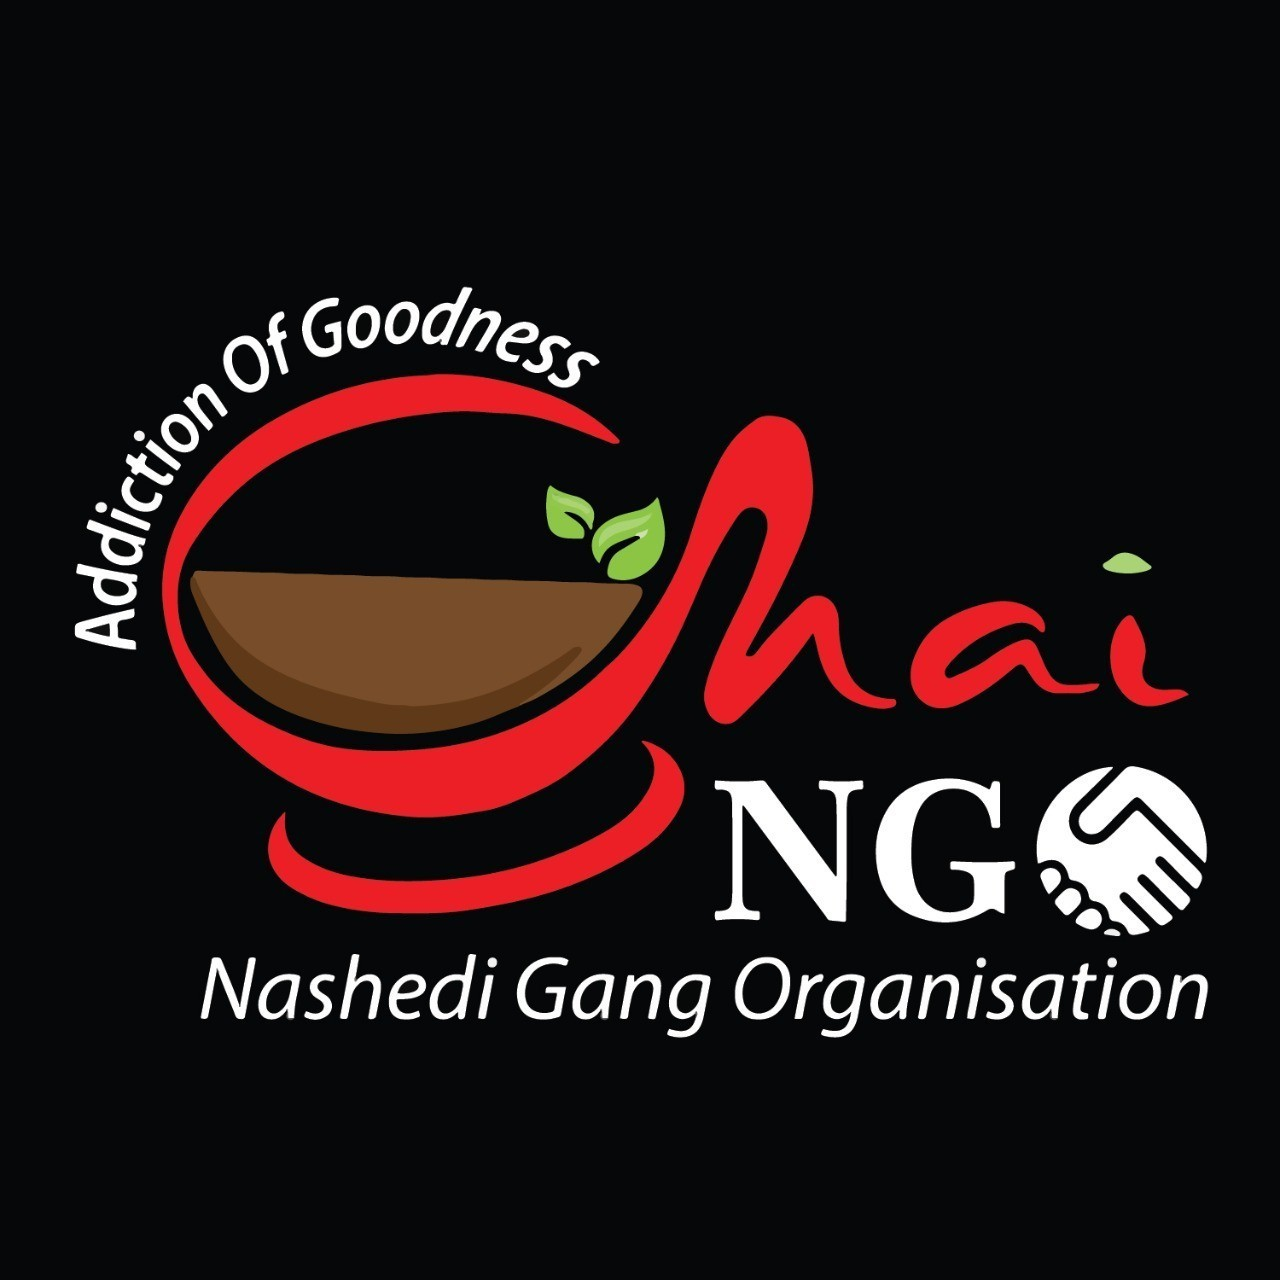 Food Franchise Business Opportunity  Chai NGO Chaat Formula